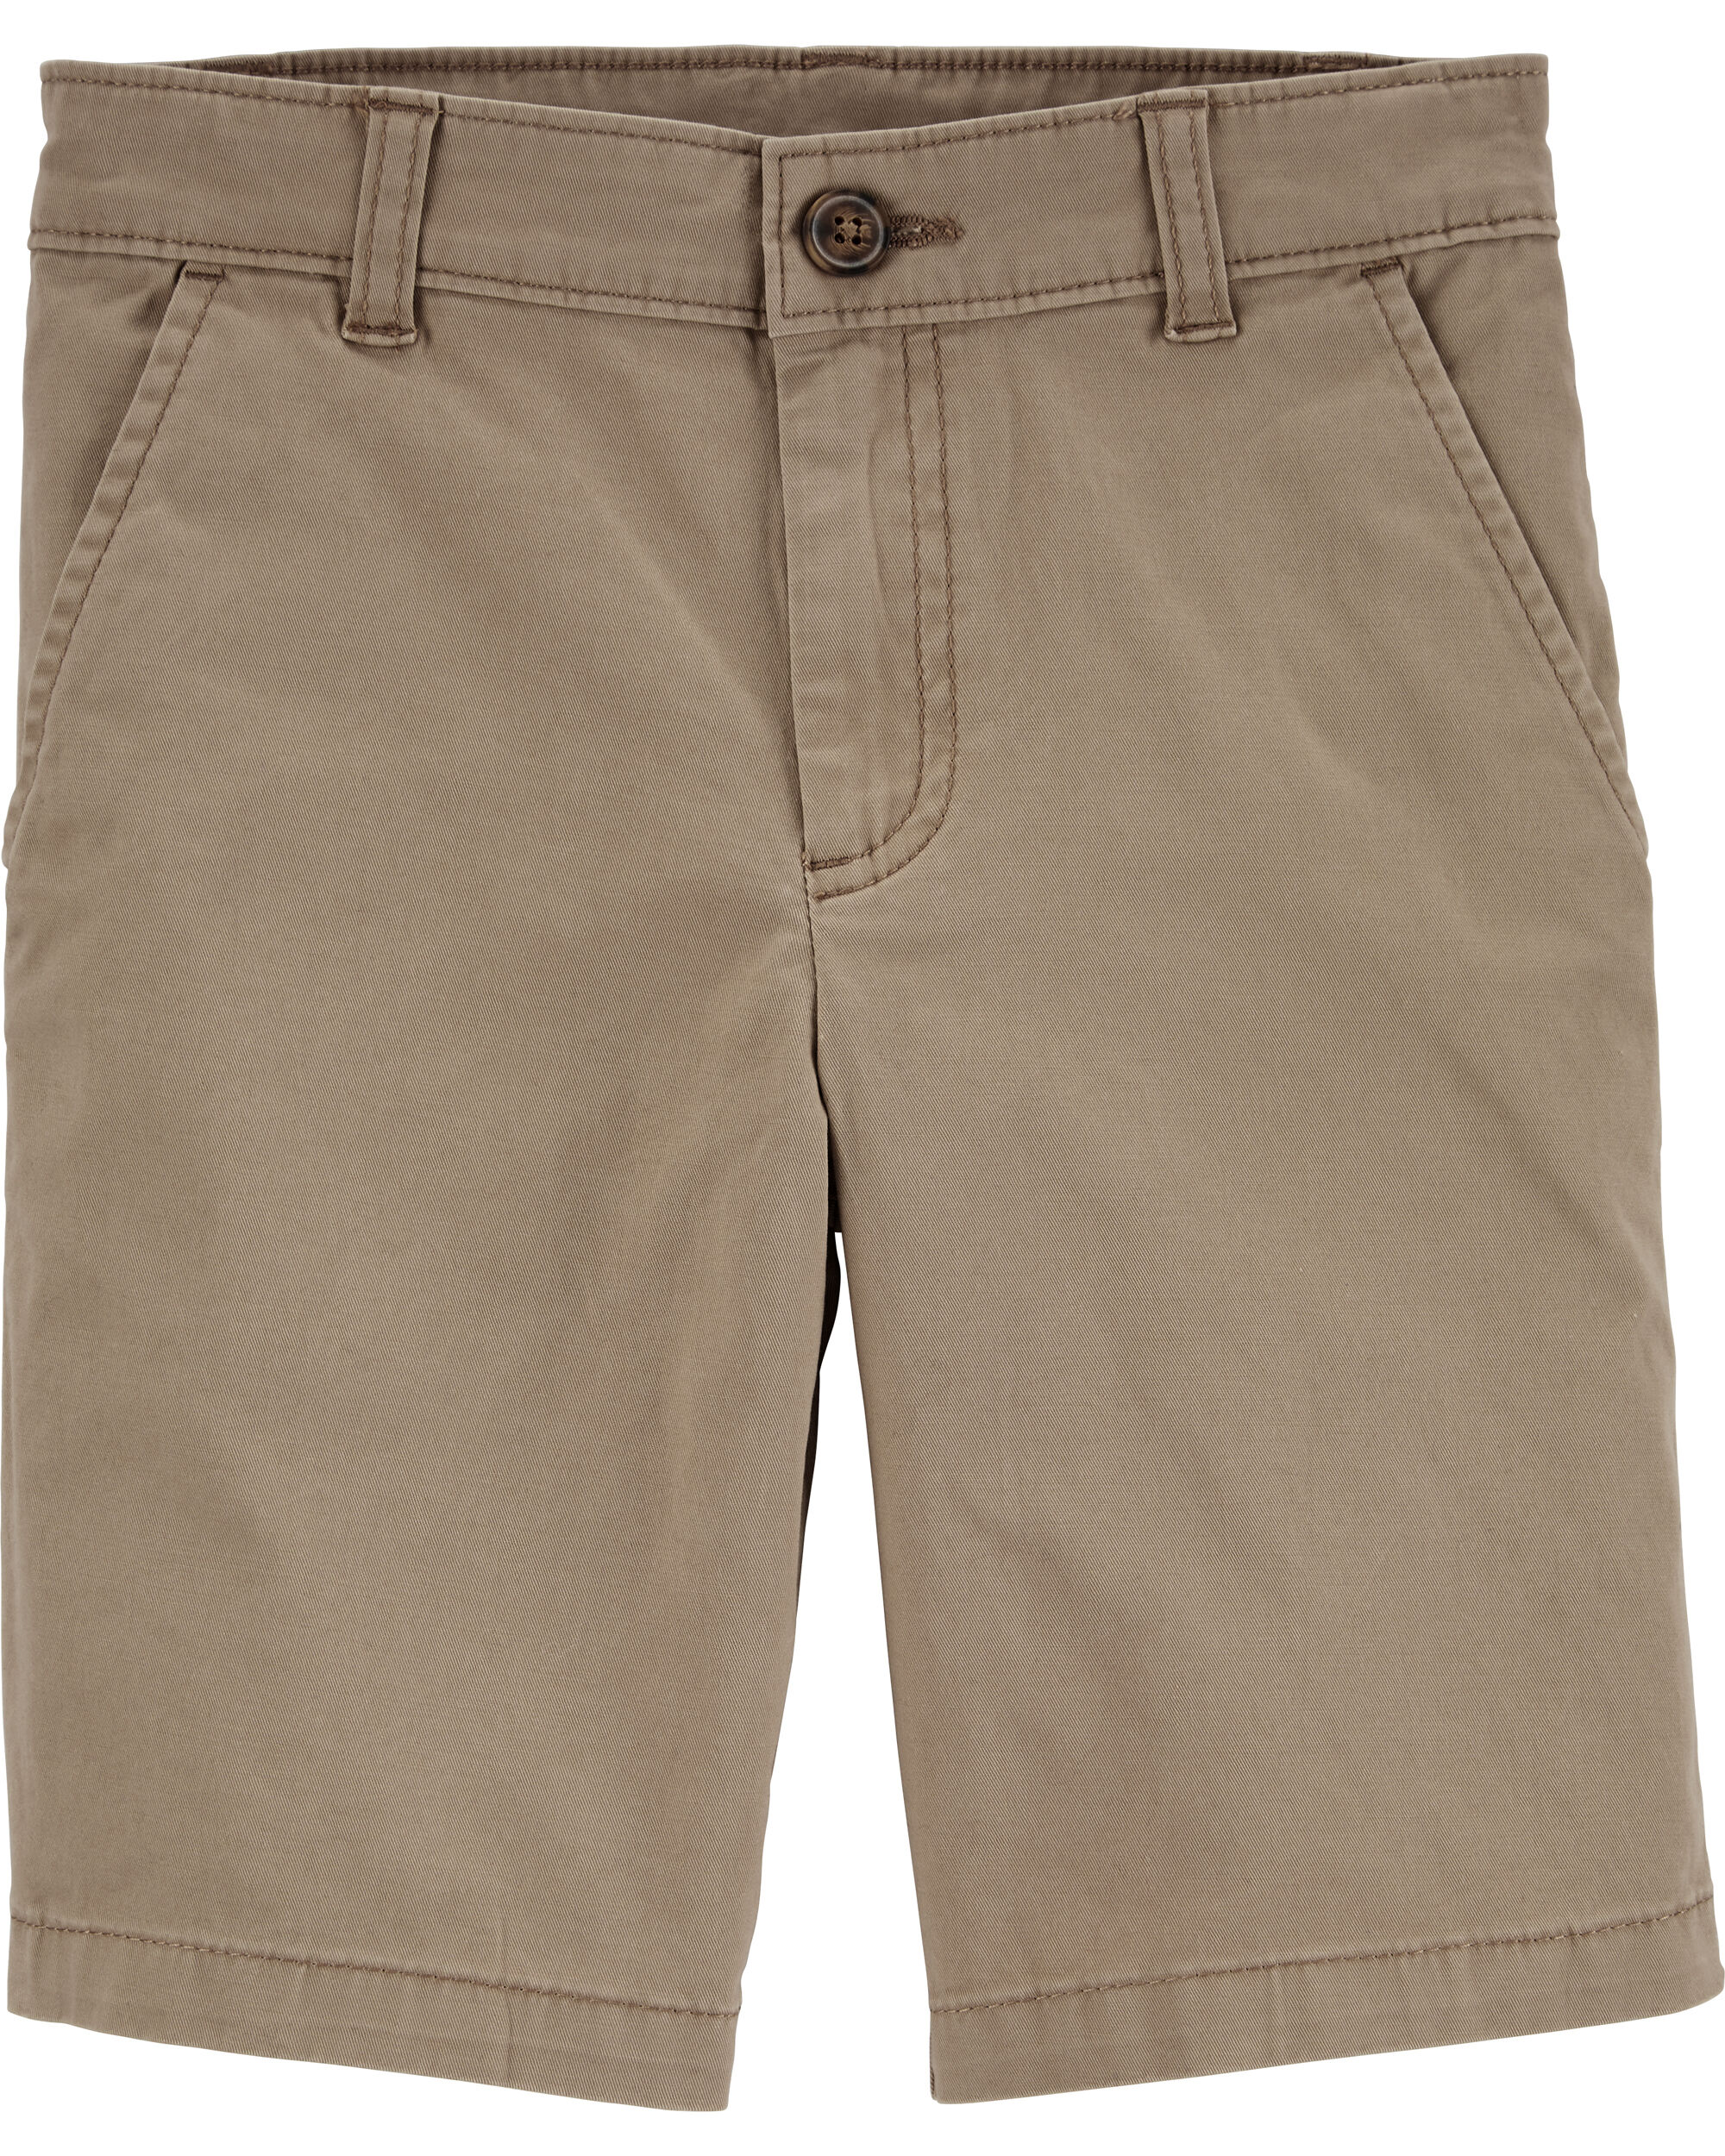 *CLEARANCE* Flat-Front Shorts